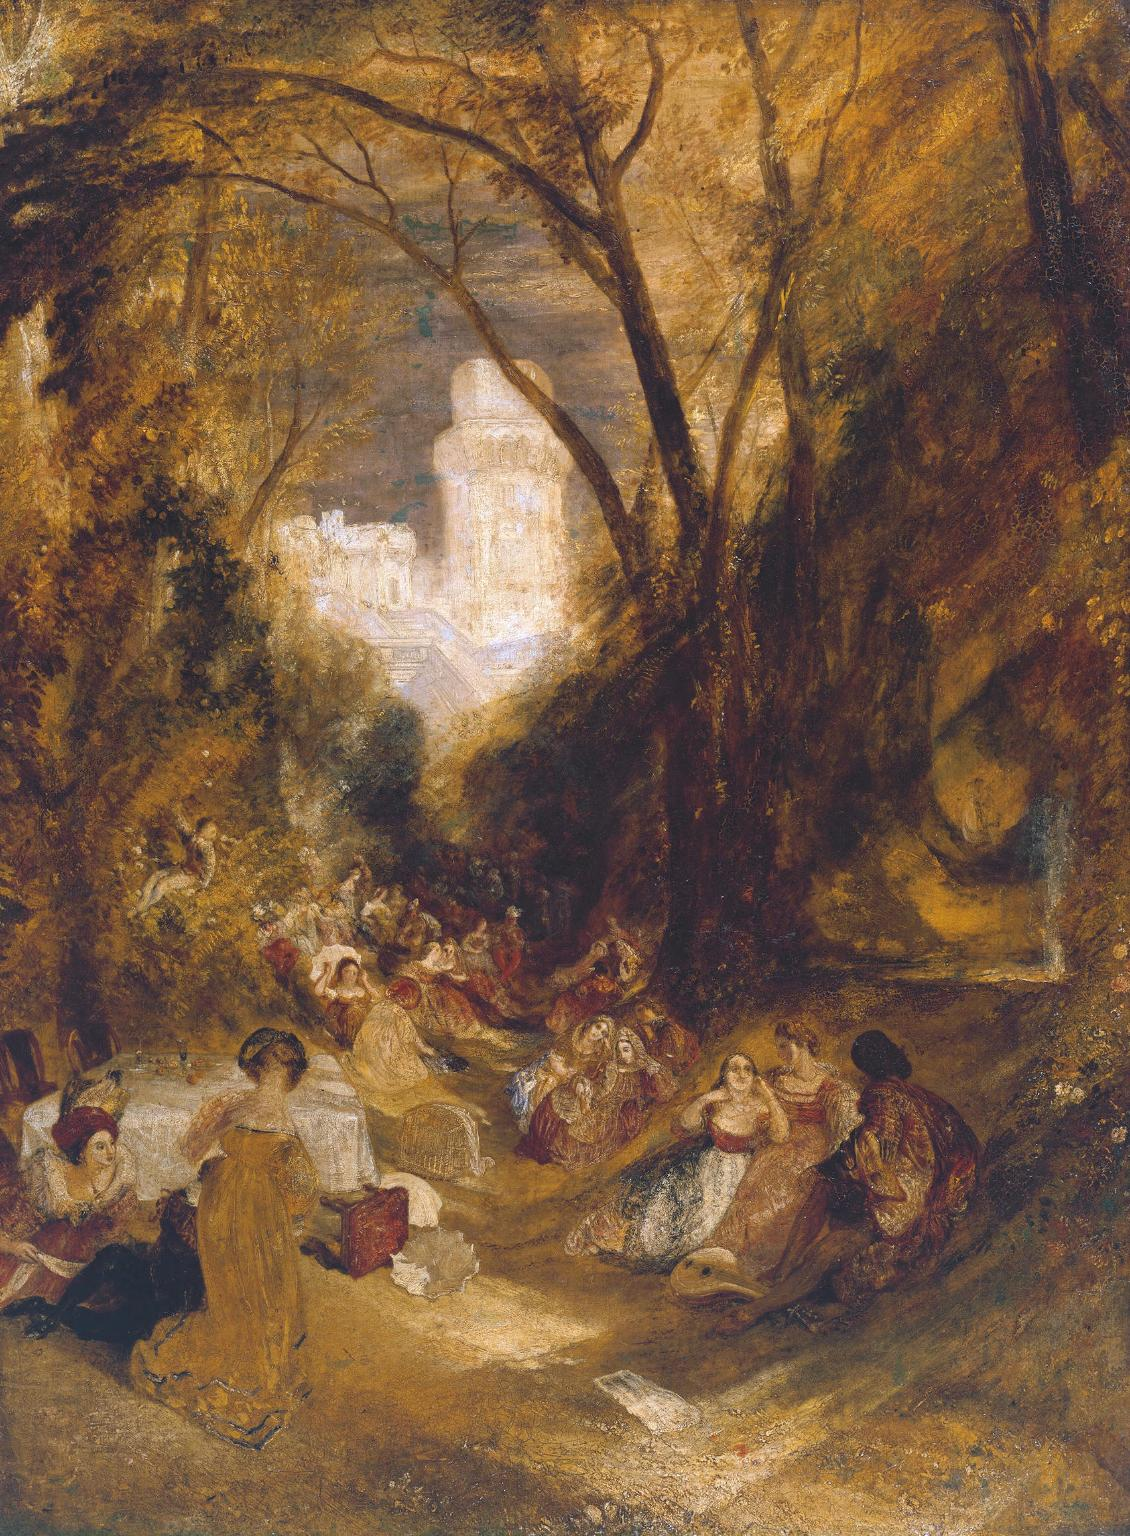 Boccaccio Relating the Tale of the Bird-Cage exhibited 1828 by Joseph Mallord William Turner 1775-1851